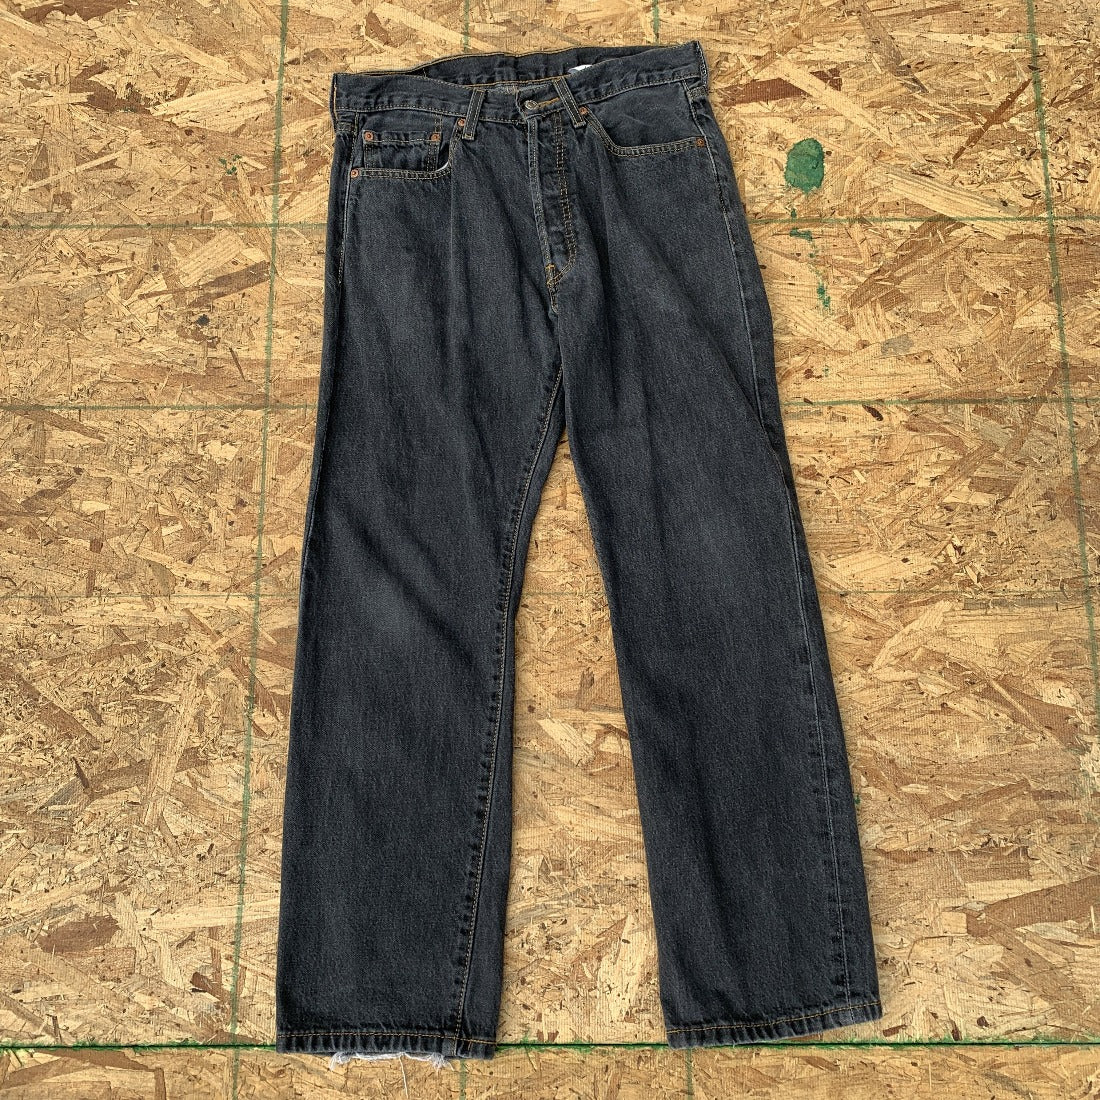 Levi's 501 Black Denim Jeans | 32